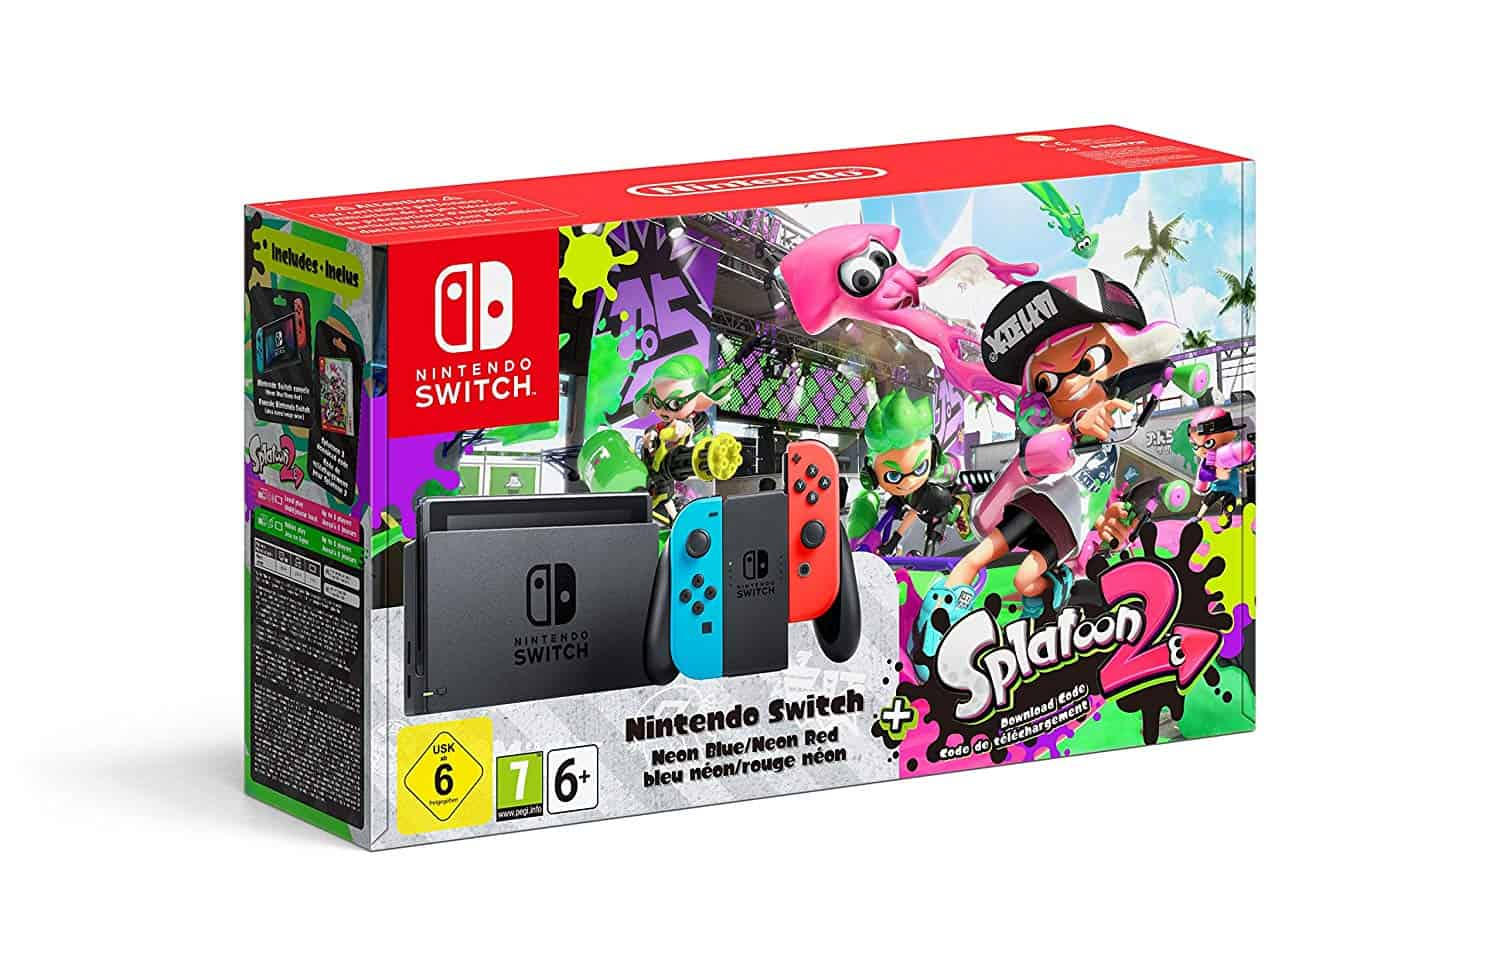 Nintendo Switch Splatoon 2 bundle